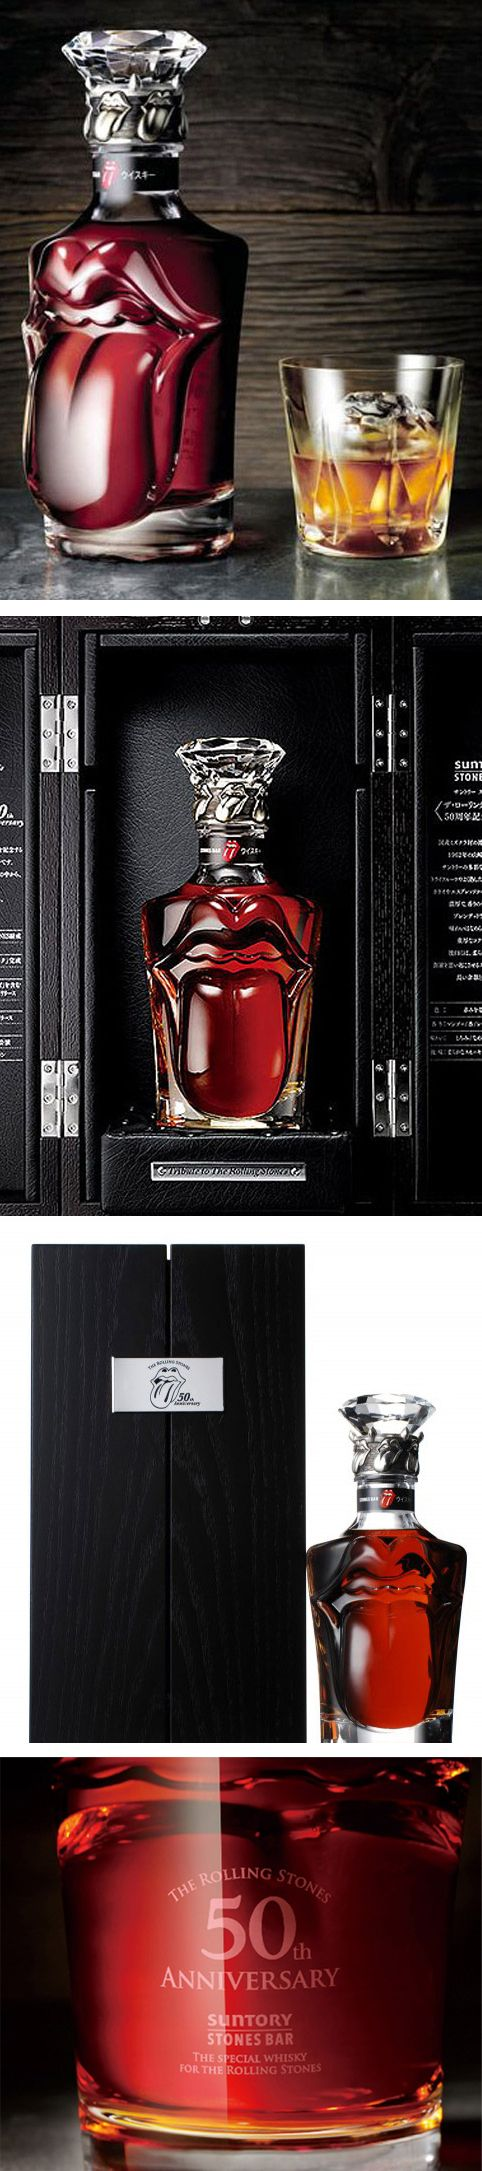 The Rolling Stones 50th Anniversary's whisky by Suntory. Only 150 bottles available for $6300.00